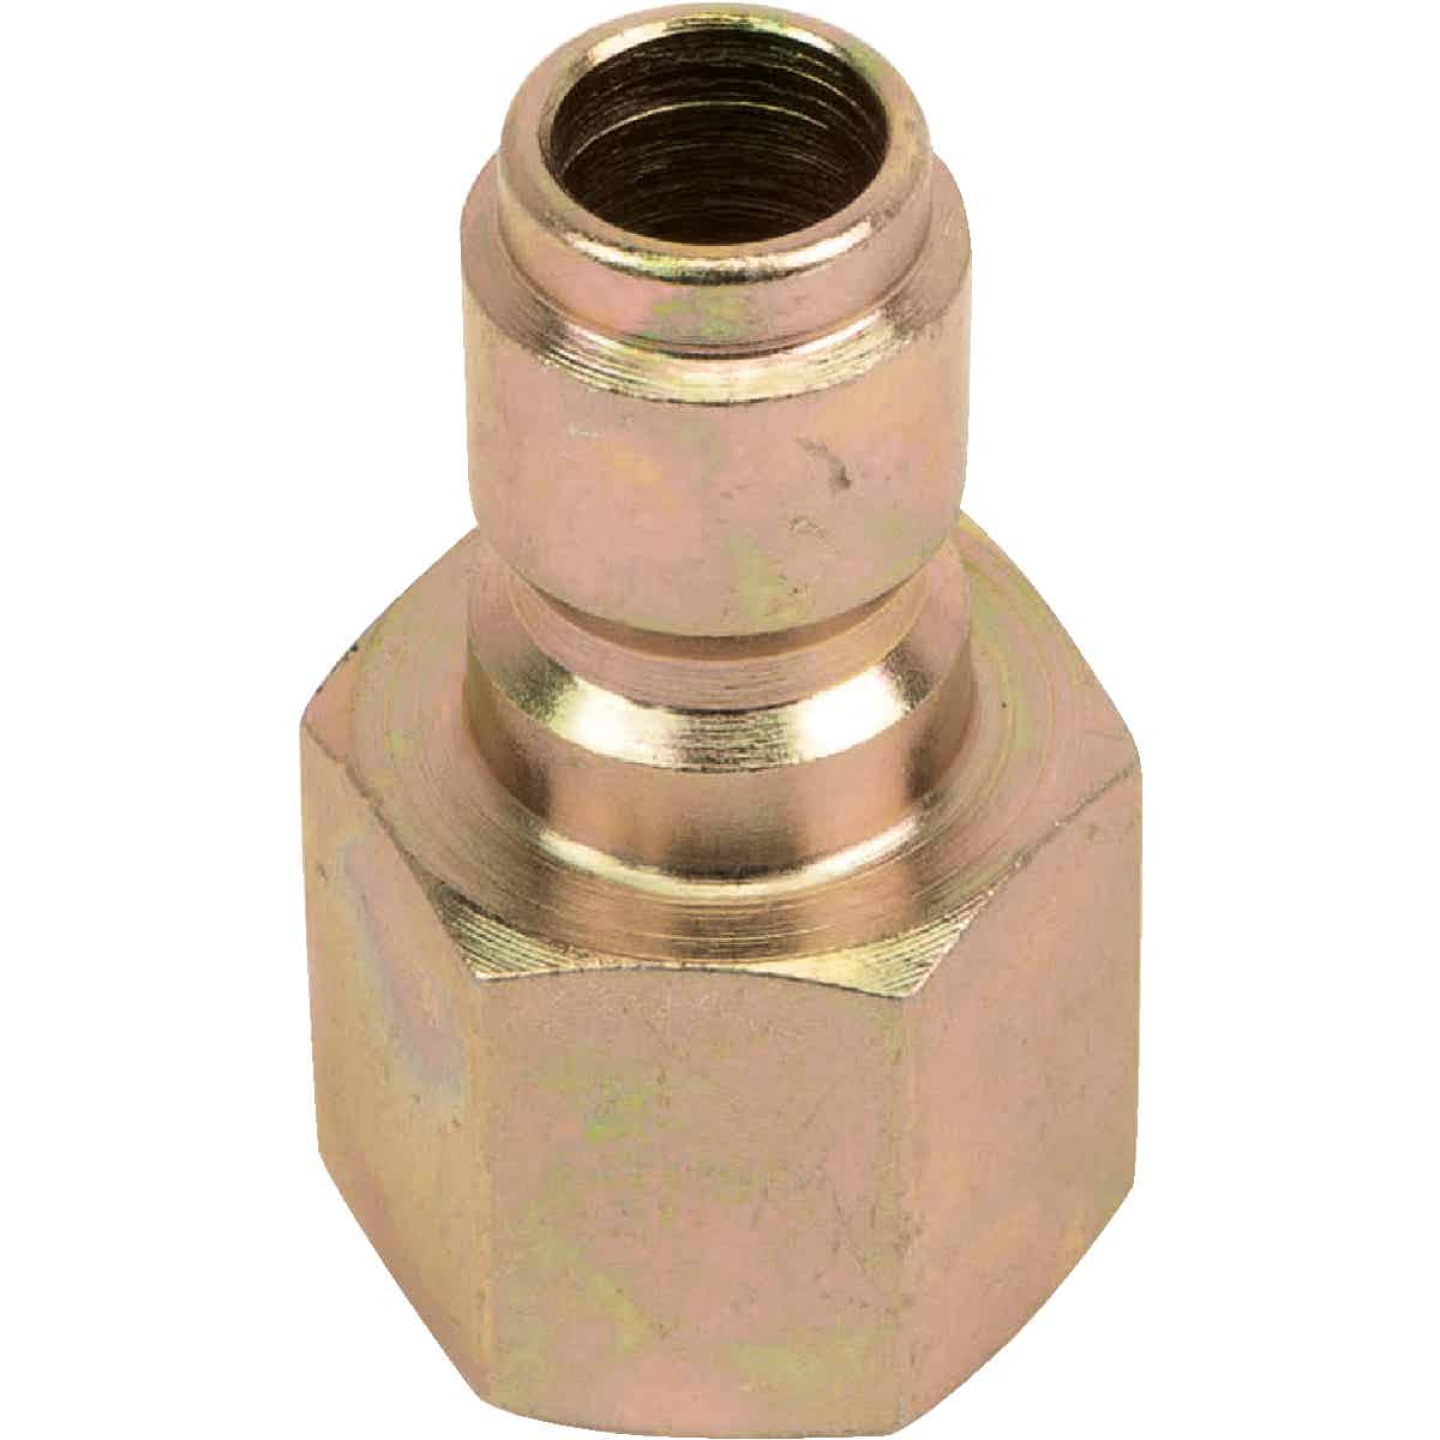 Forney 3/8 In. Female Quick Connect Pressure Washer Plug Image 3